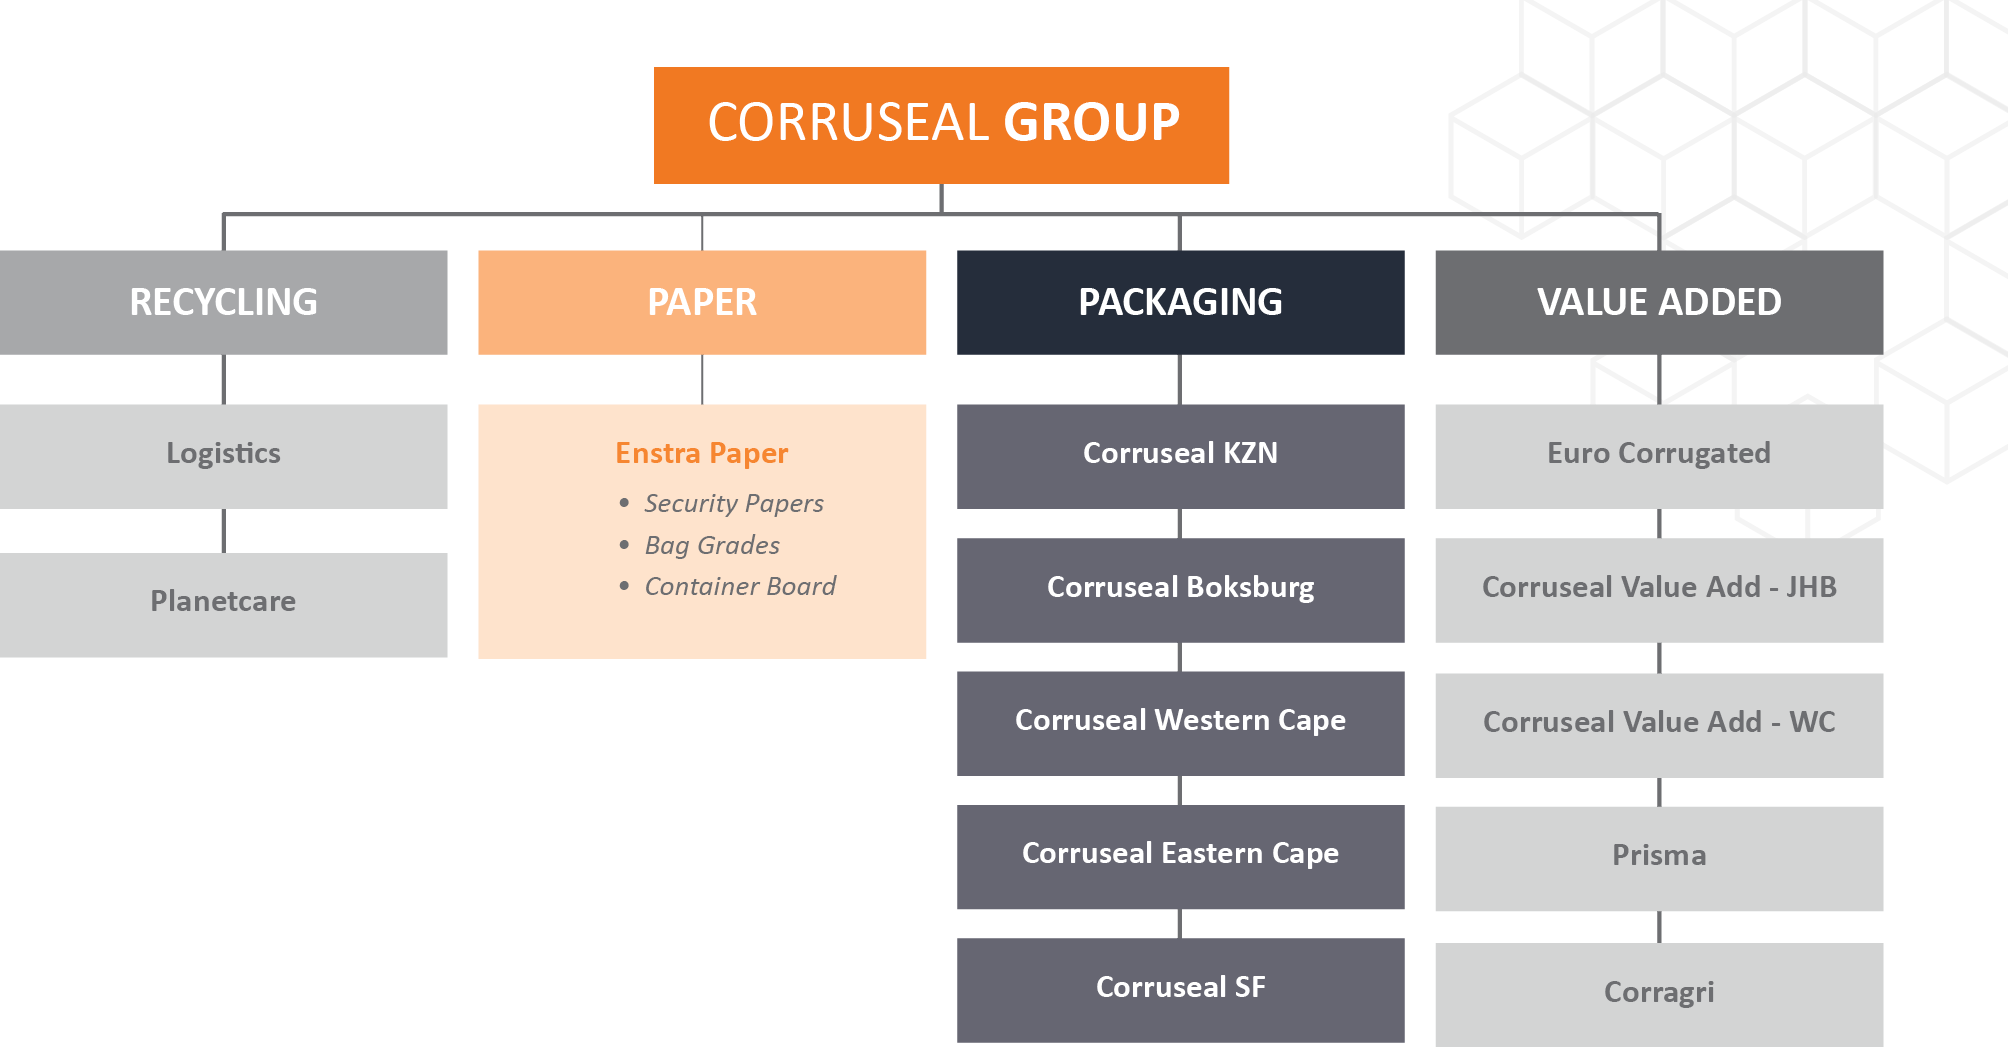 Corruseal_GROUP STRUCTURE